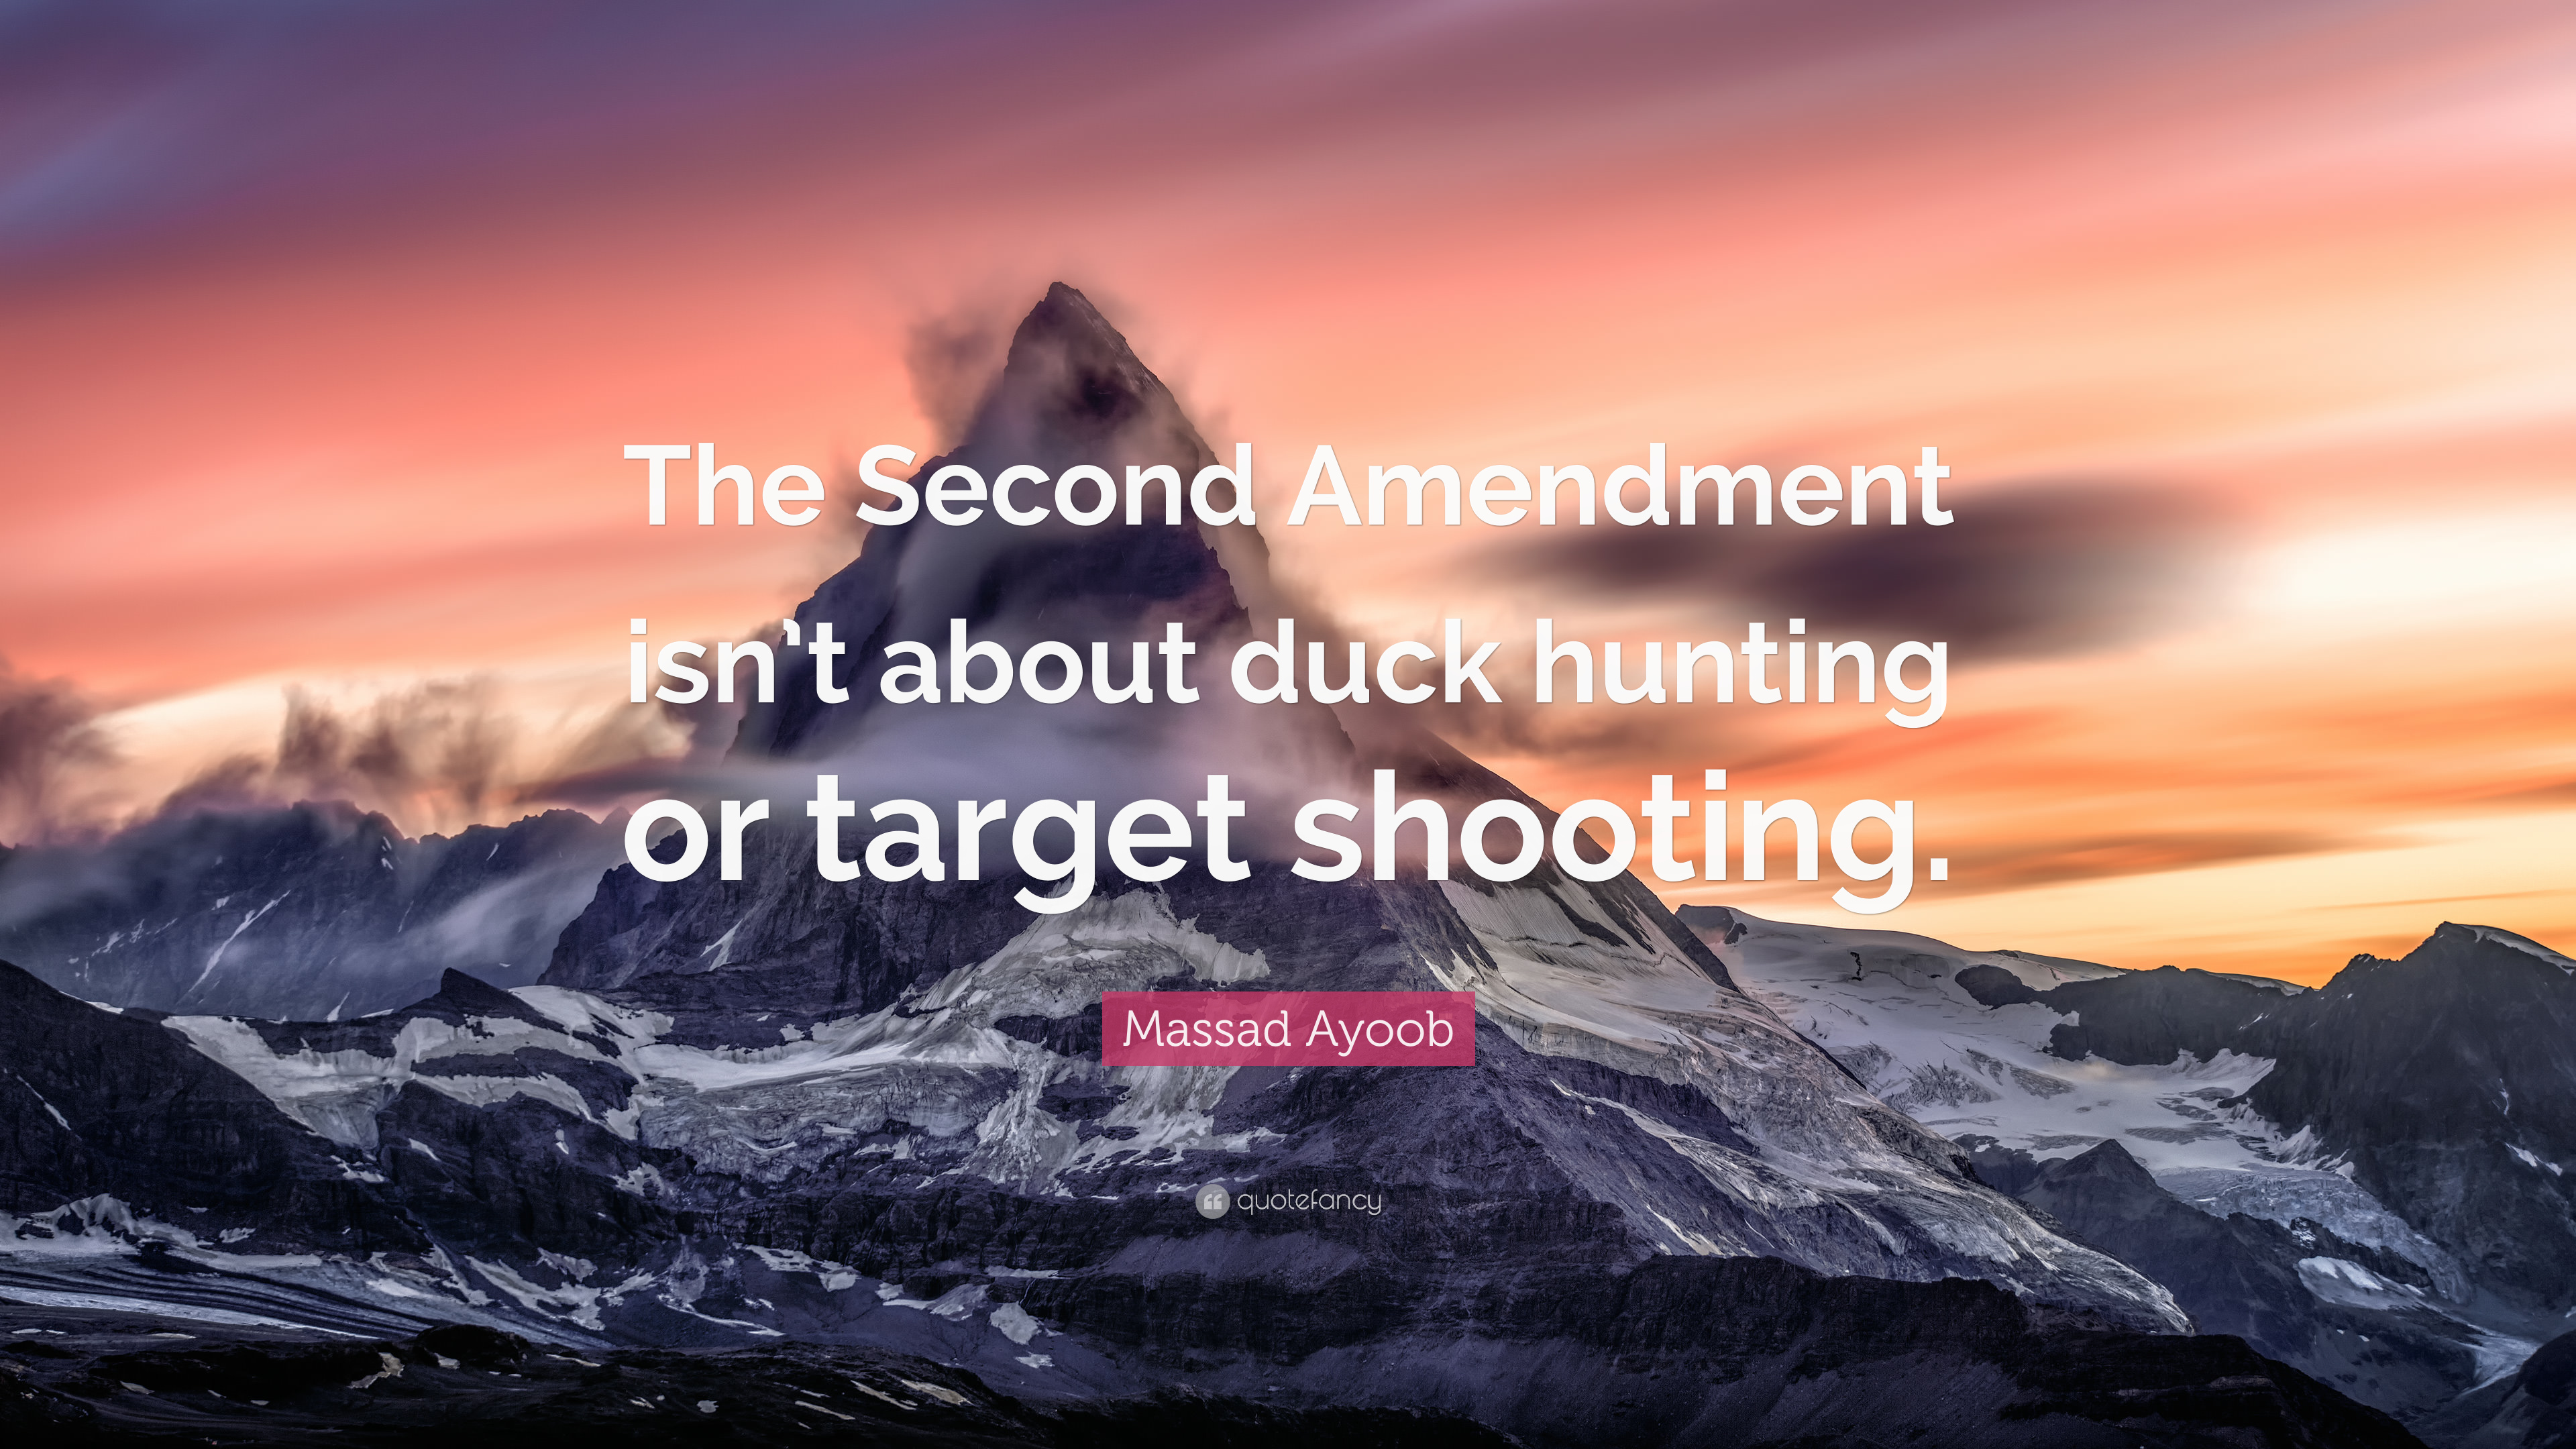 The Second Amendment isn't about duck